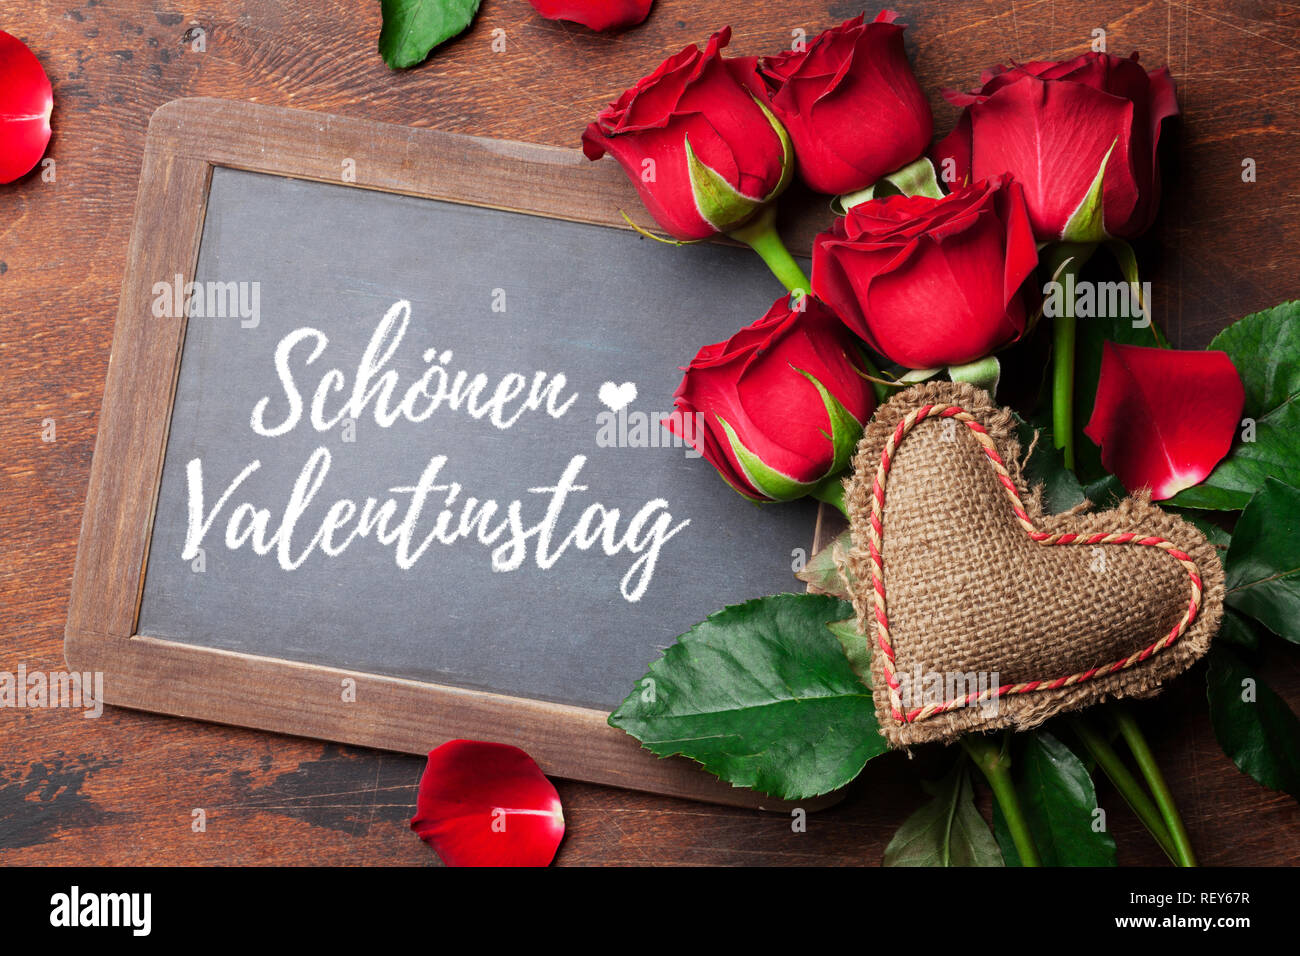 Valentine's day greeting card with red rose flowers bouquet on wooden background. Schönen Valentinstag Germany. Top view with chalkboard for your gree - Stock Image